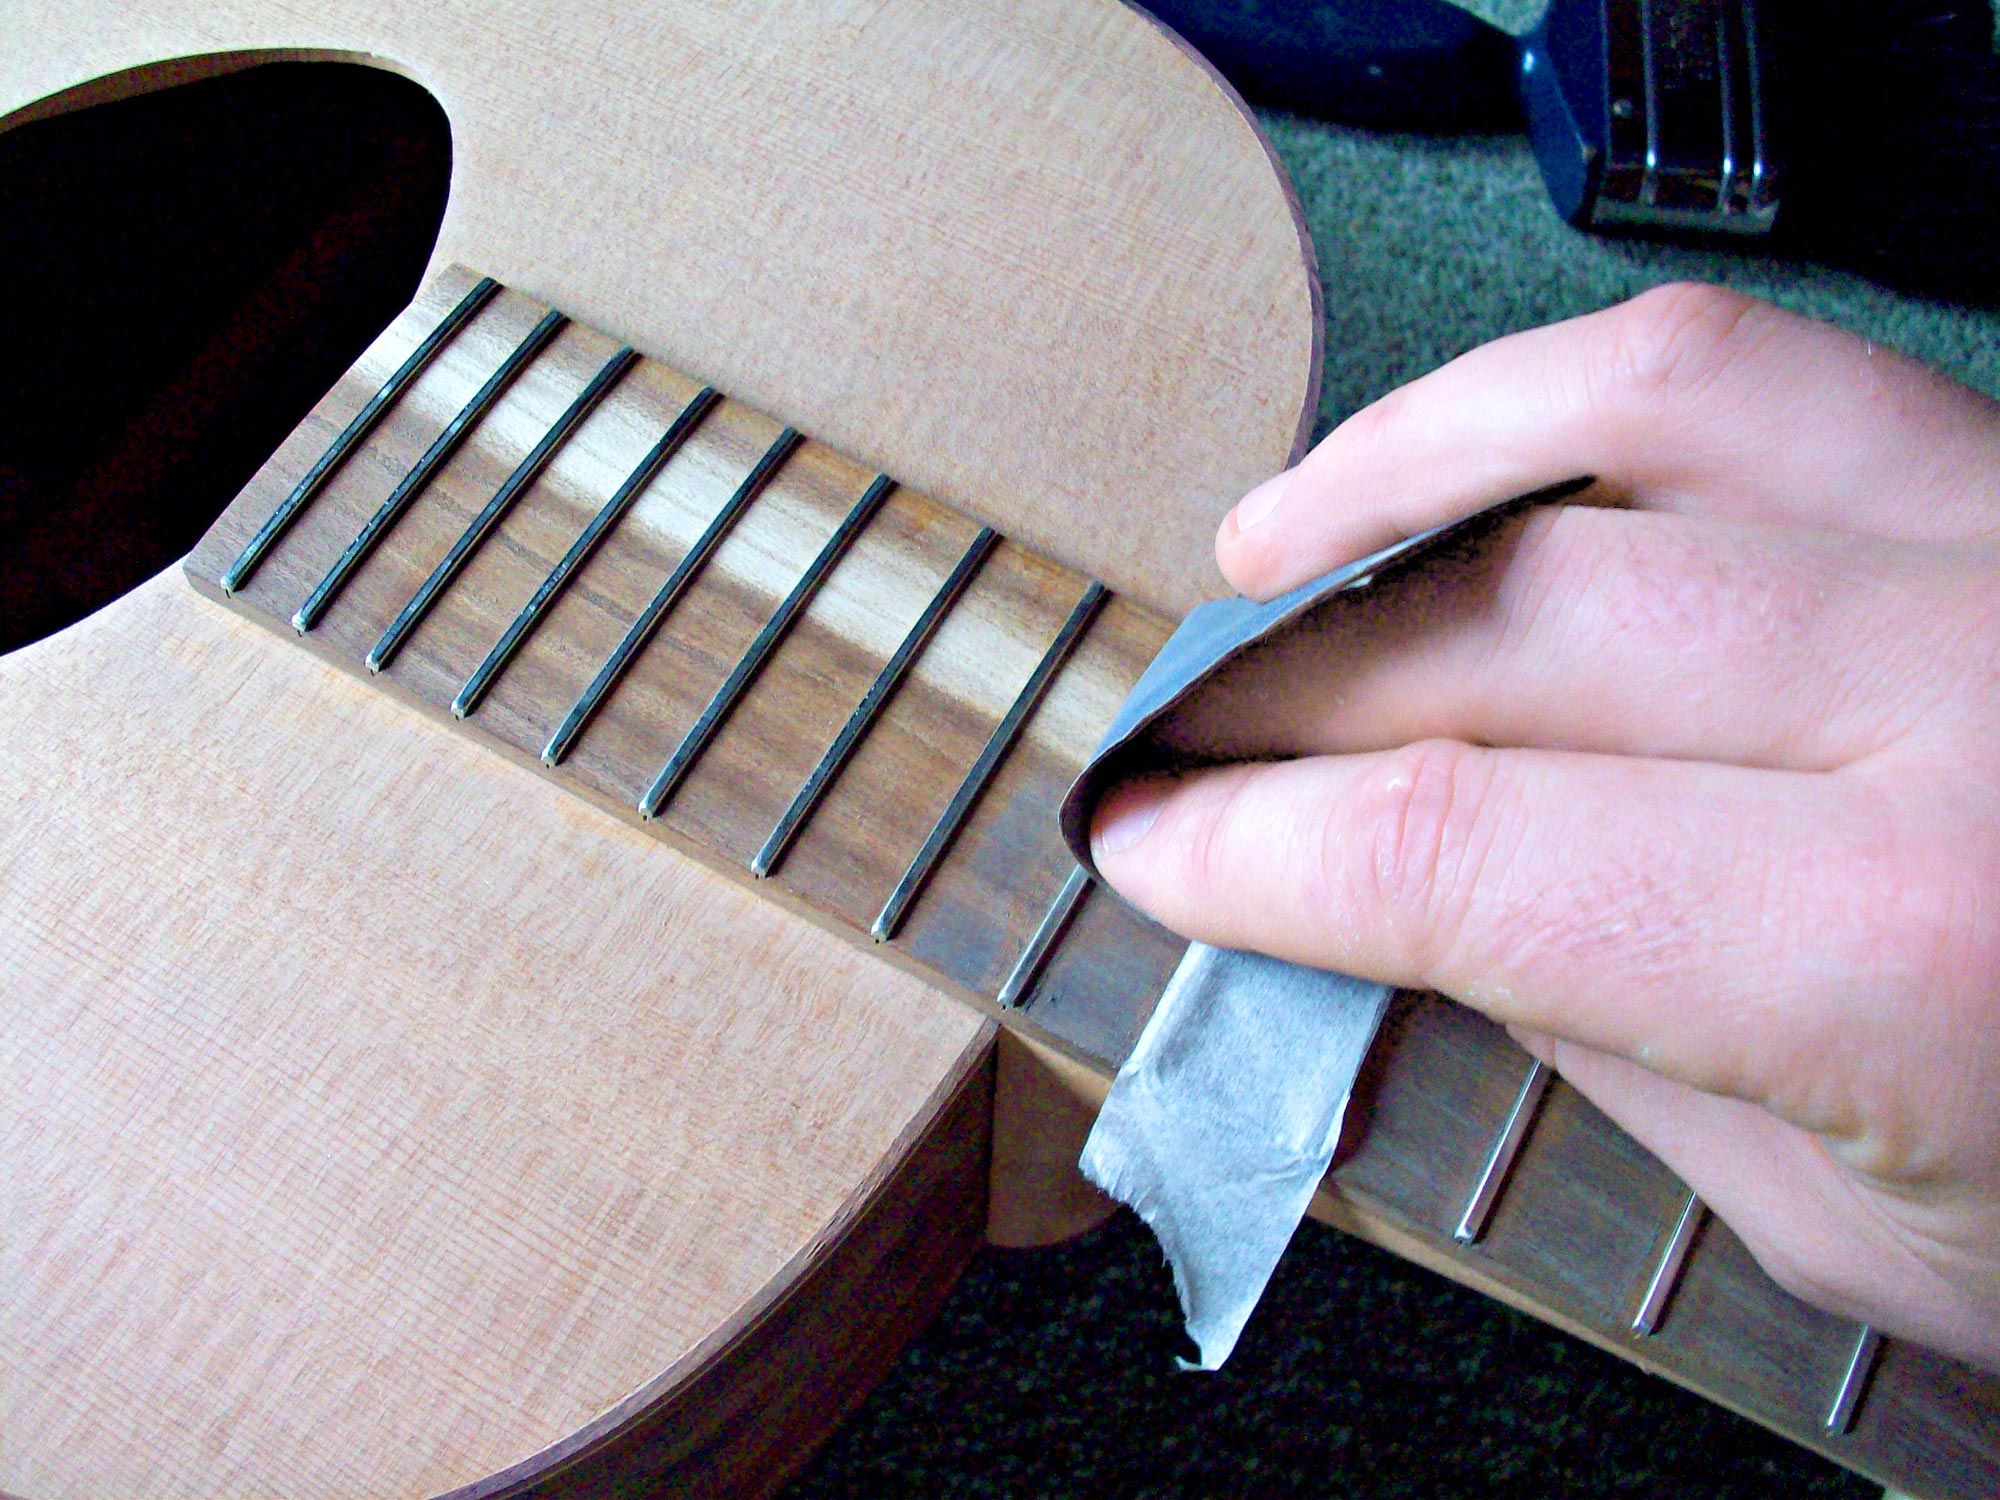 how to maintain a guitar, fret cleaning, fret setup. fret buzz